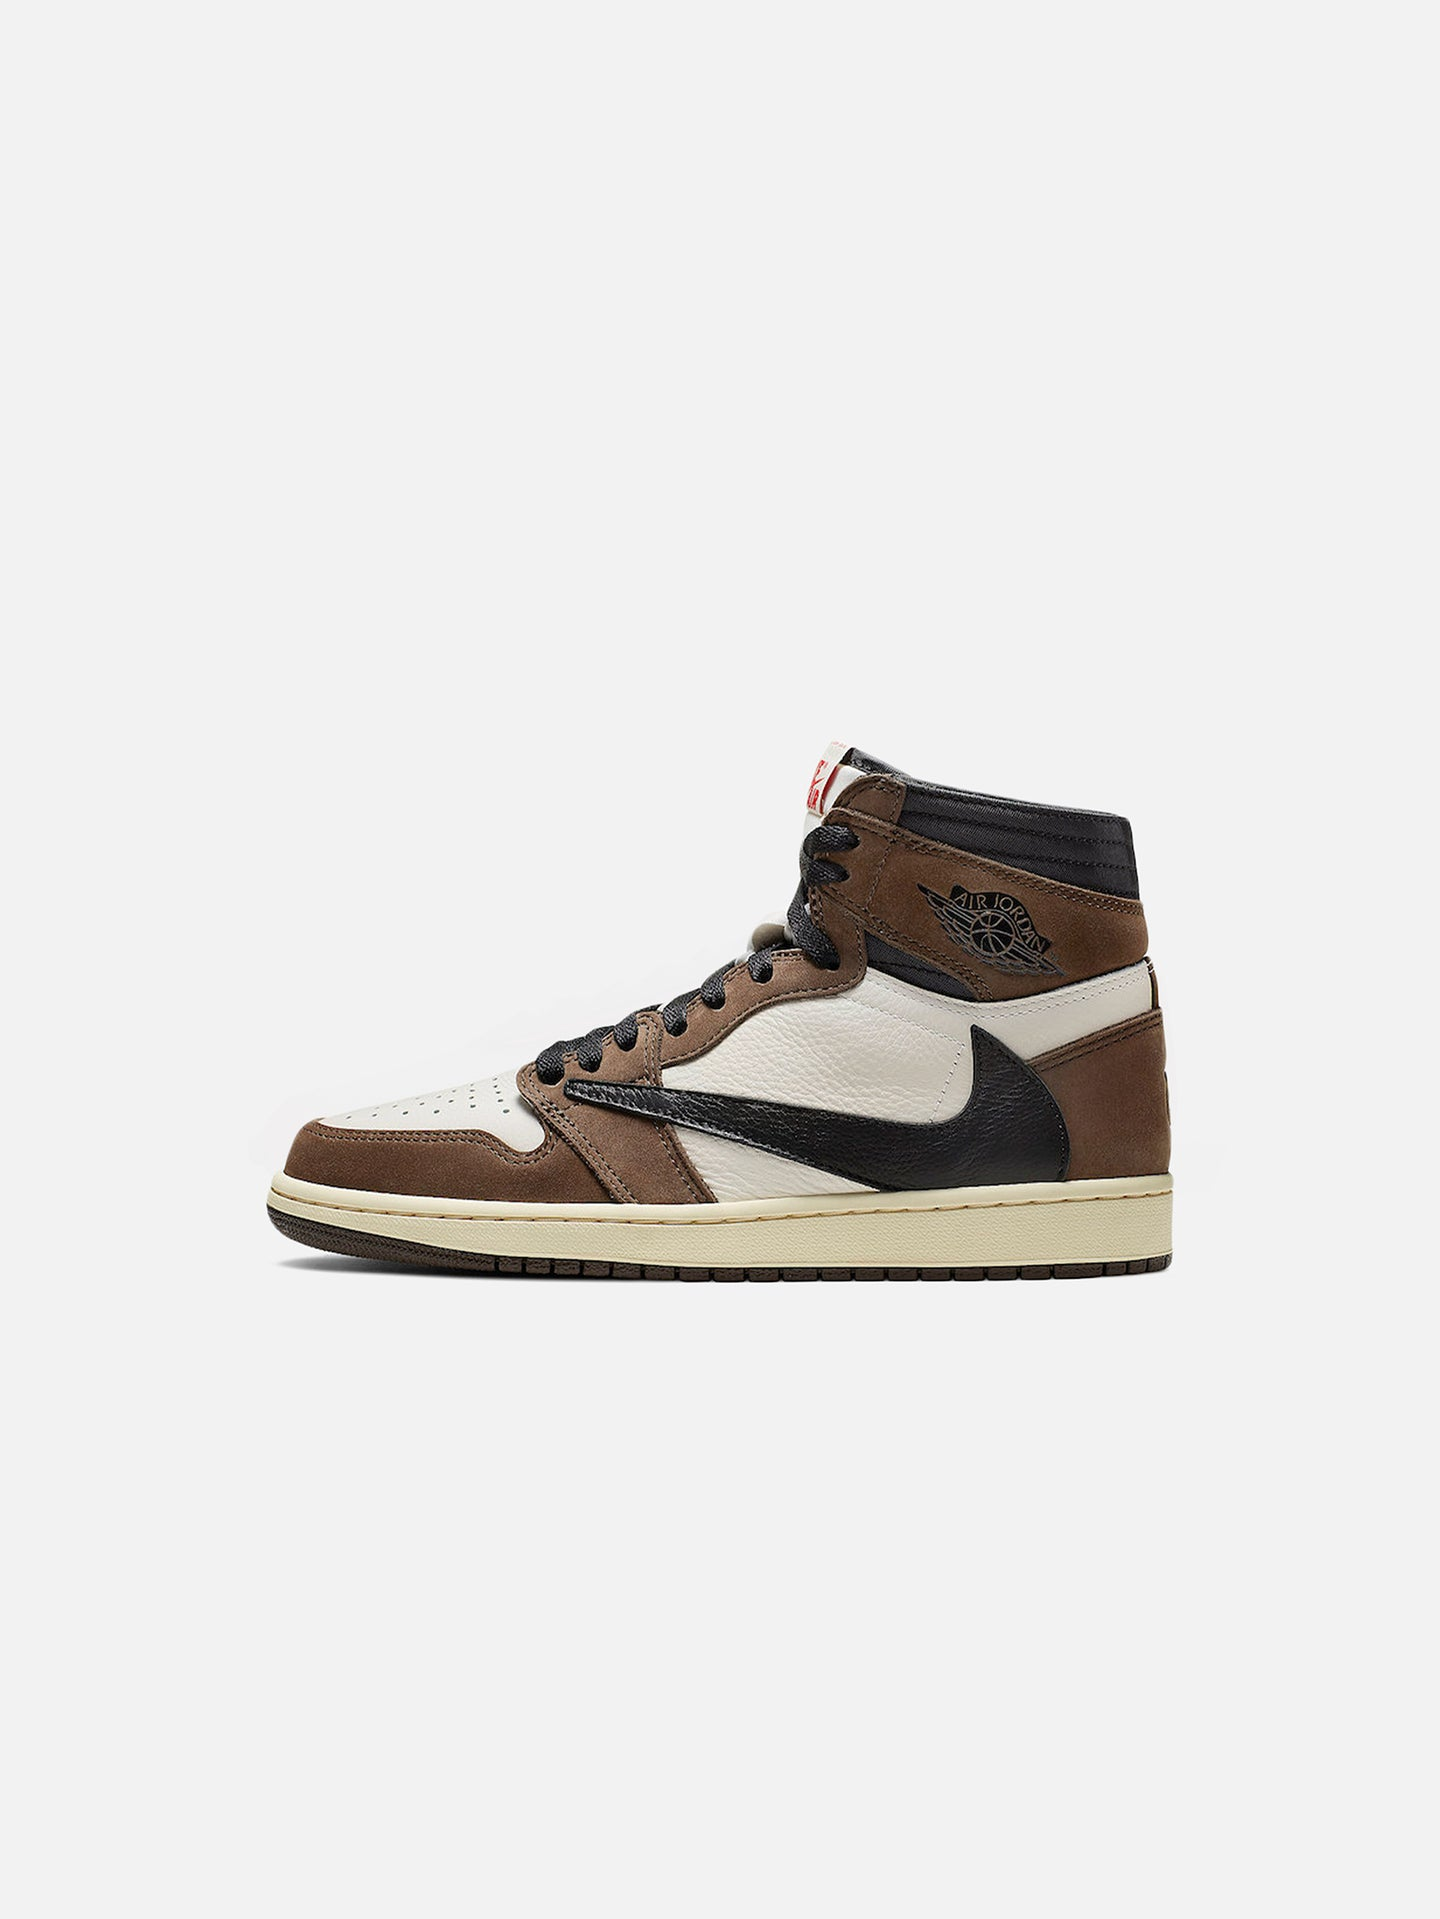 x TRAVIS SCOTT AIR JORDAN 1 HIGH OG